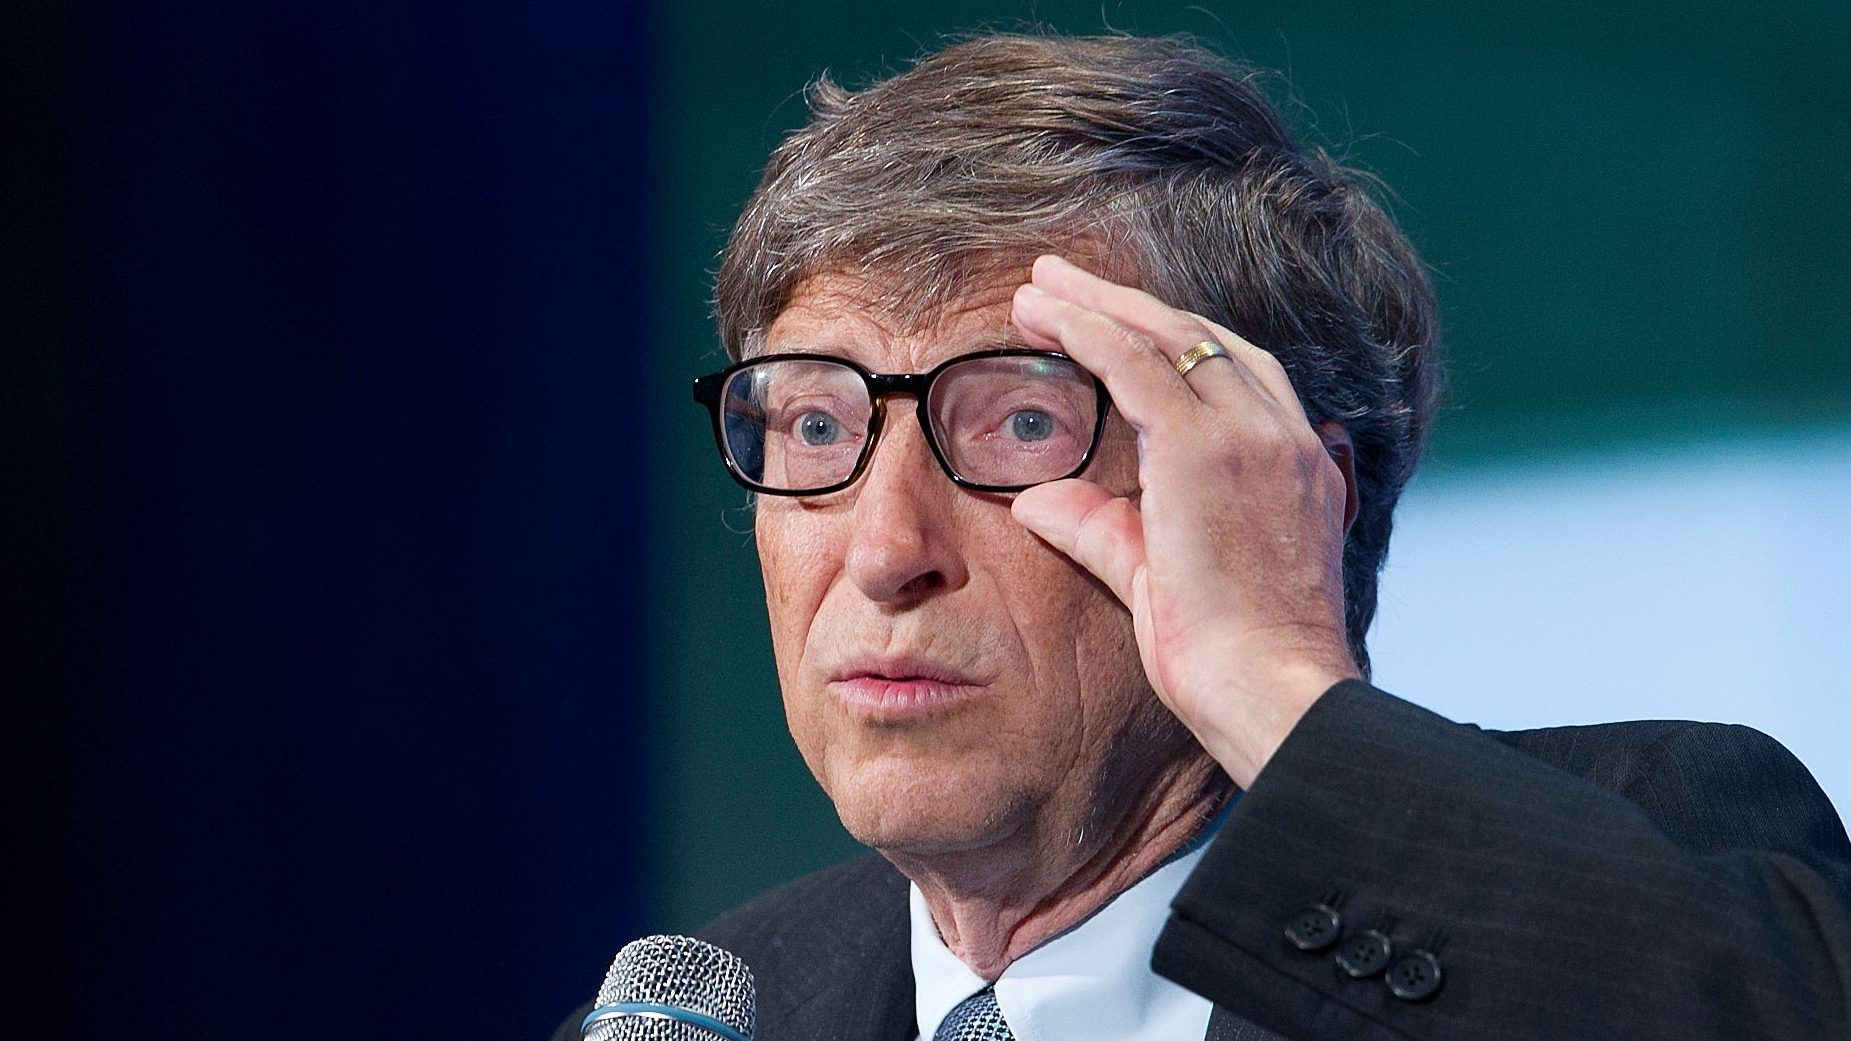 Bill Gates, co-founder of Microsoft, talks during a Clinton Global Initiative, Tuesday, Sept. 24, 2013 in New York. Gates was participating in a row contention on, Big Bets Philanthropy: Partnership, Risk-Taking, and Innovation.  (AP Photo/Mark Lennihan)